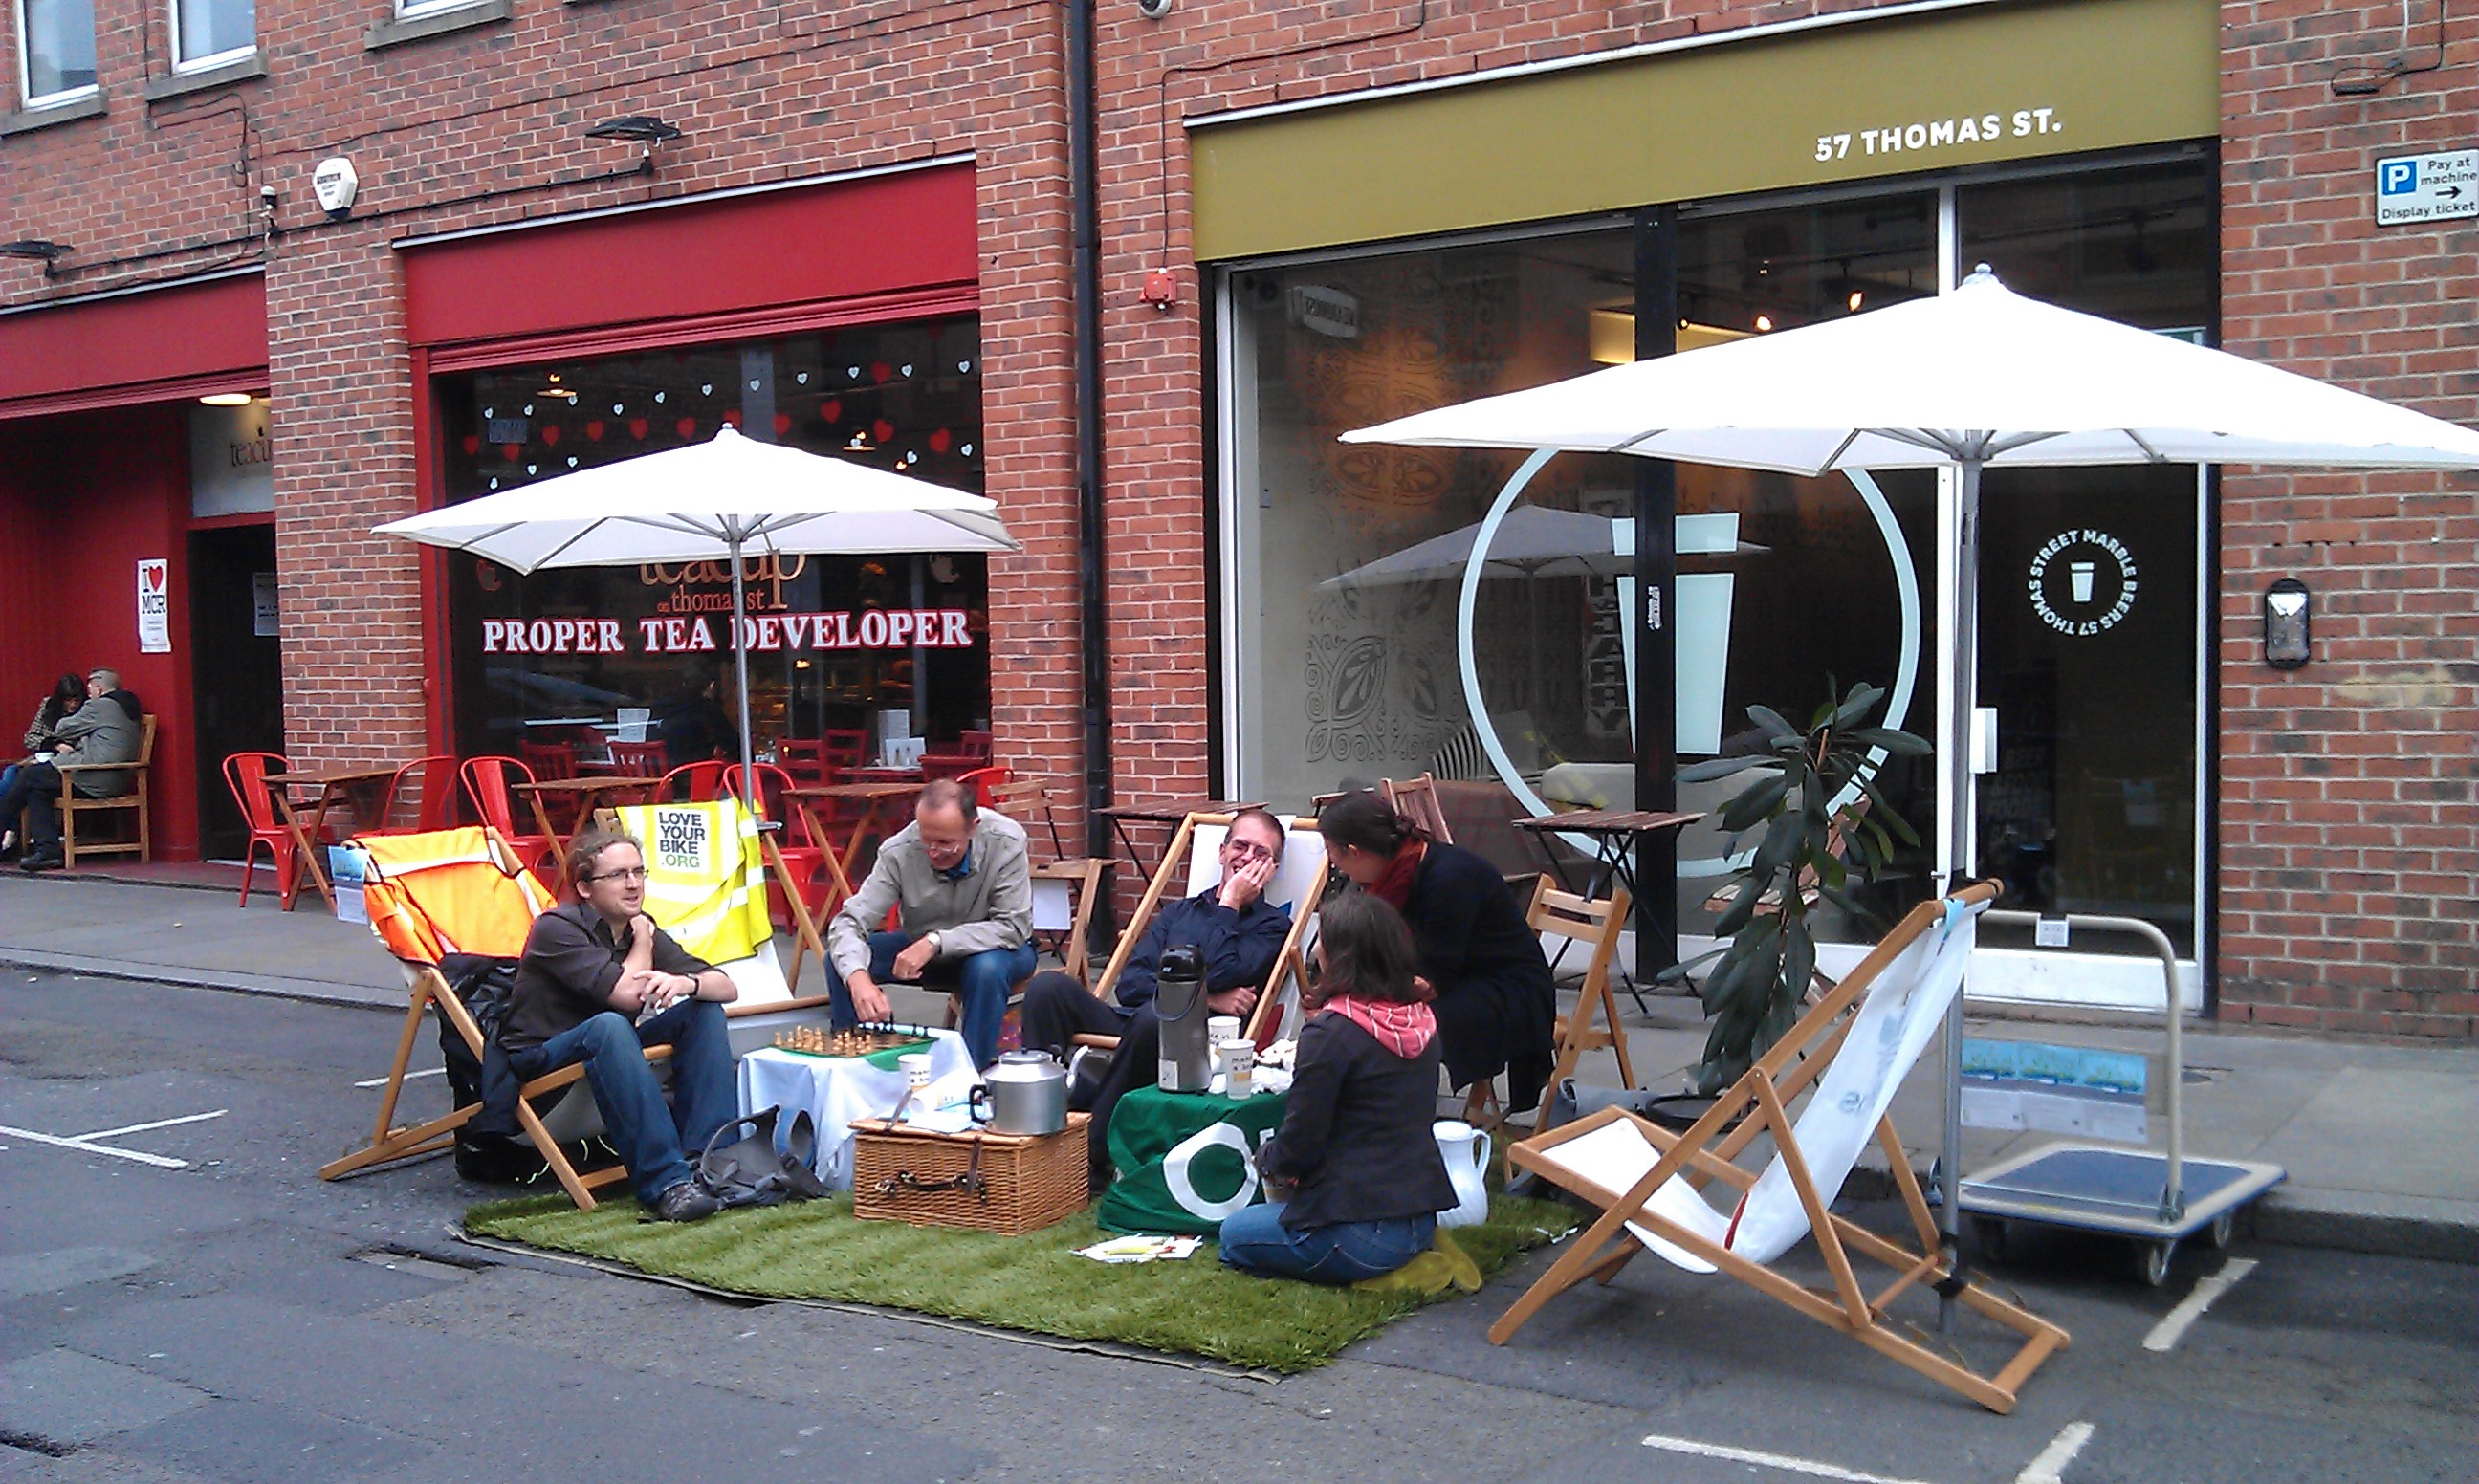 Park(ing) Day on Thomas Street (photo by @bikefabulous)